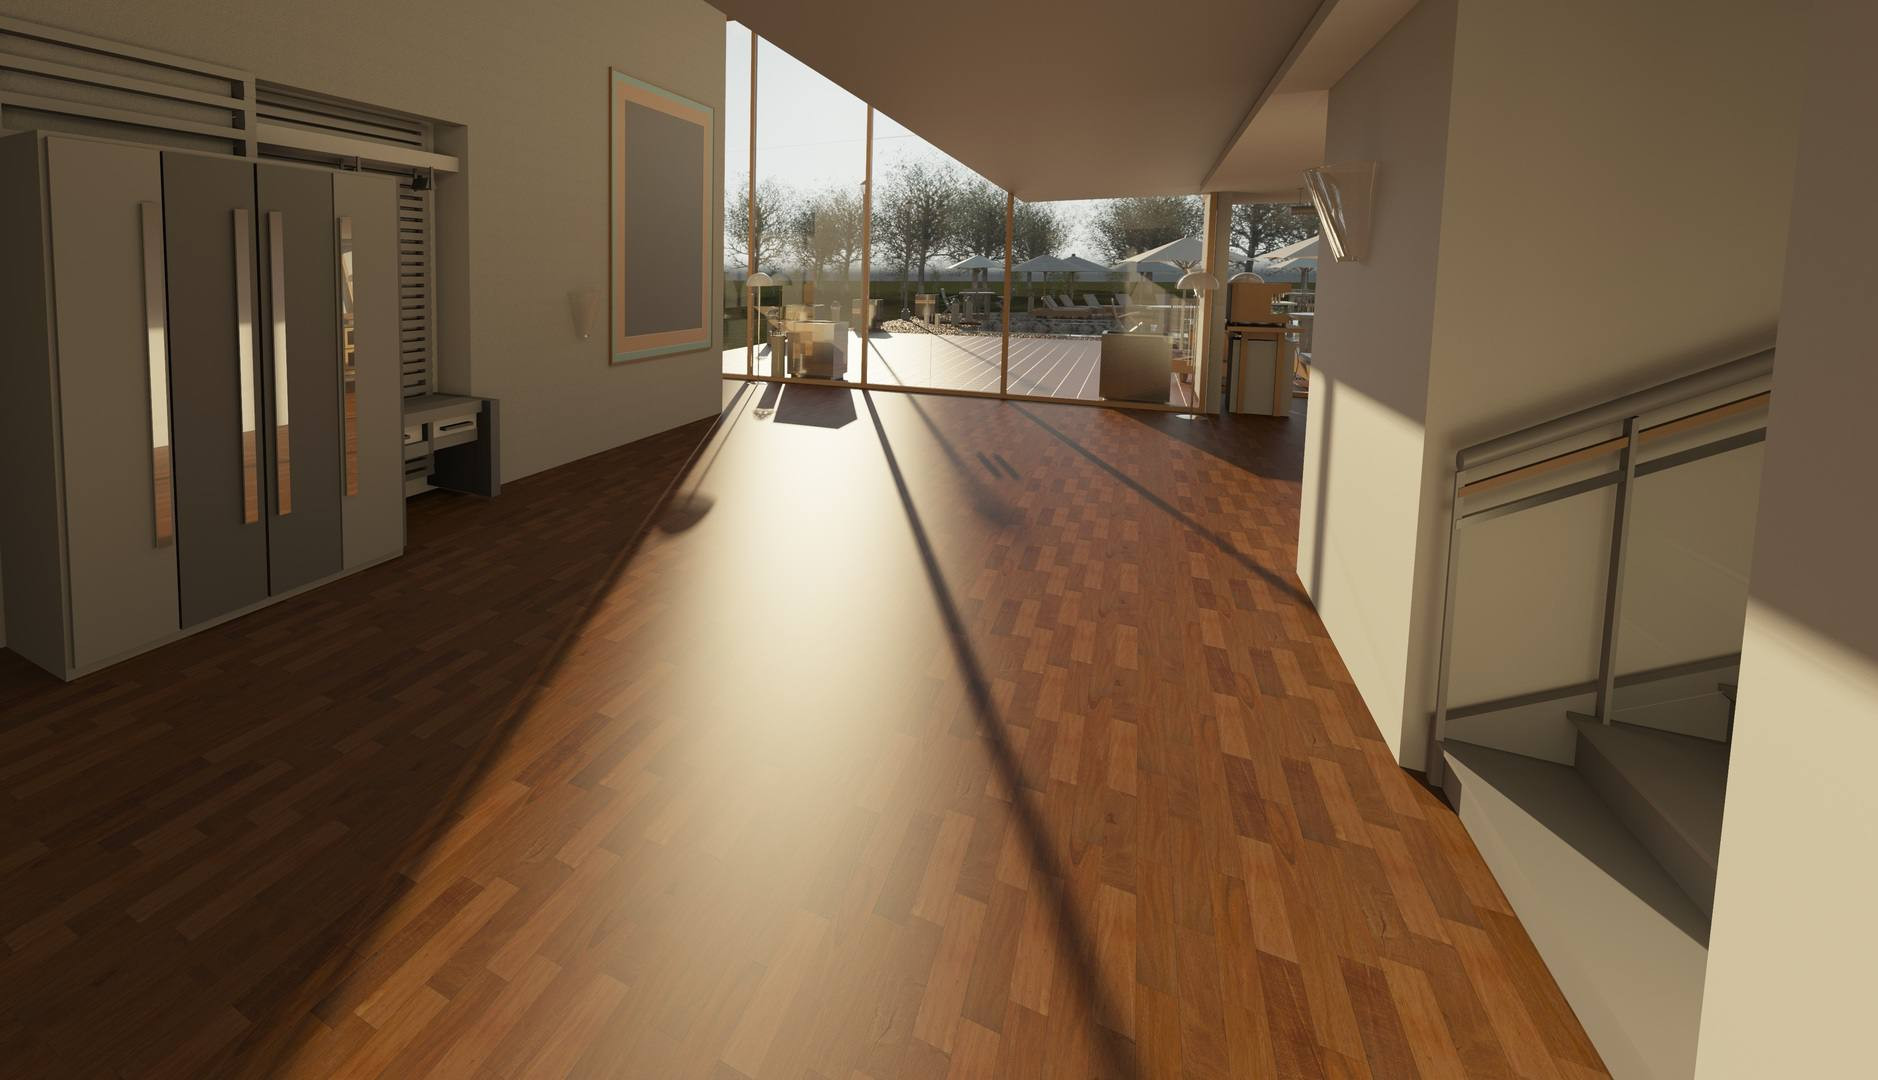 cost to install unfinished hardwood floors of common flooring types currently used in renovation and building intended for architecture wood house floor interior window 917178 pxhere com 5ba27a2cc9e77c00503b27b9